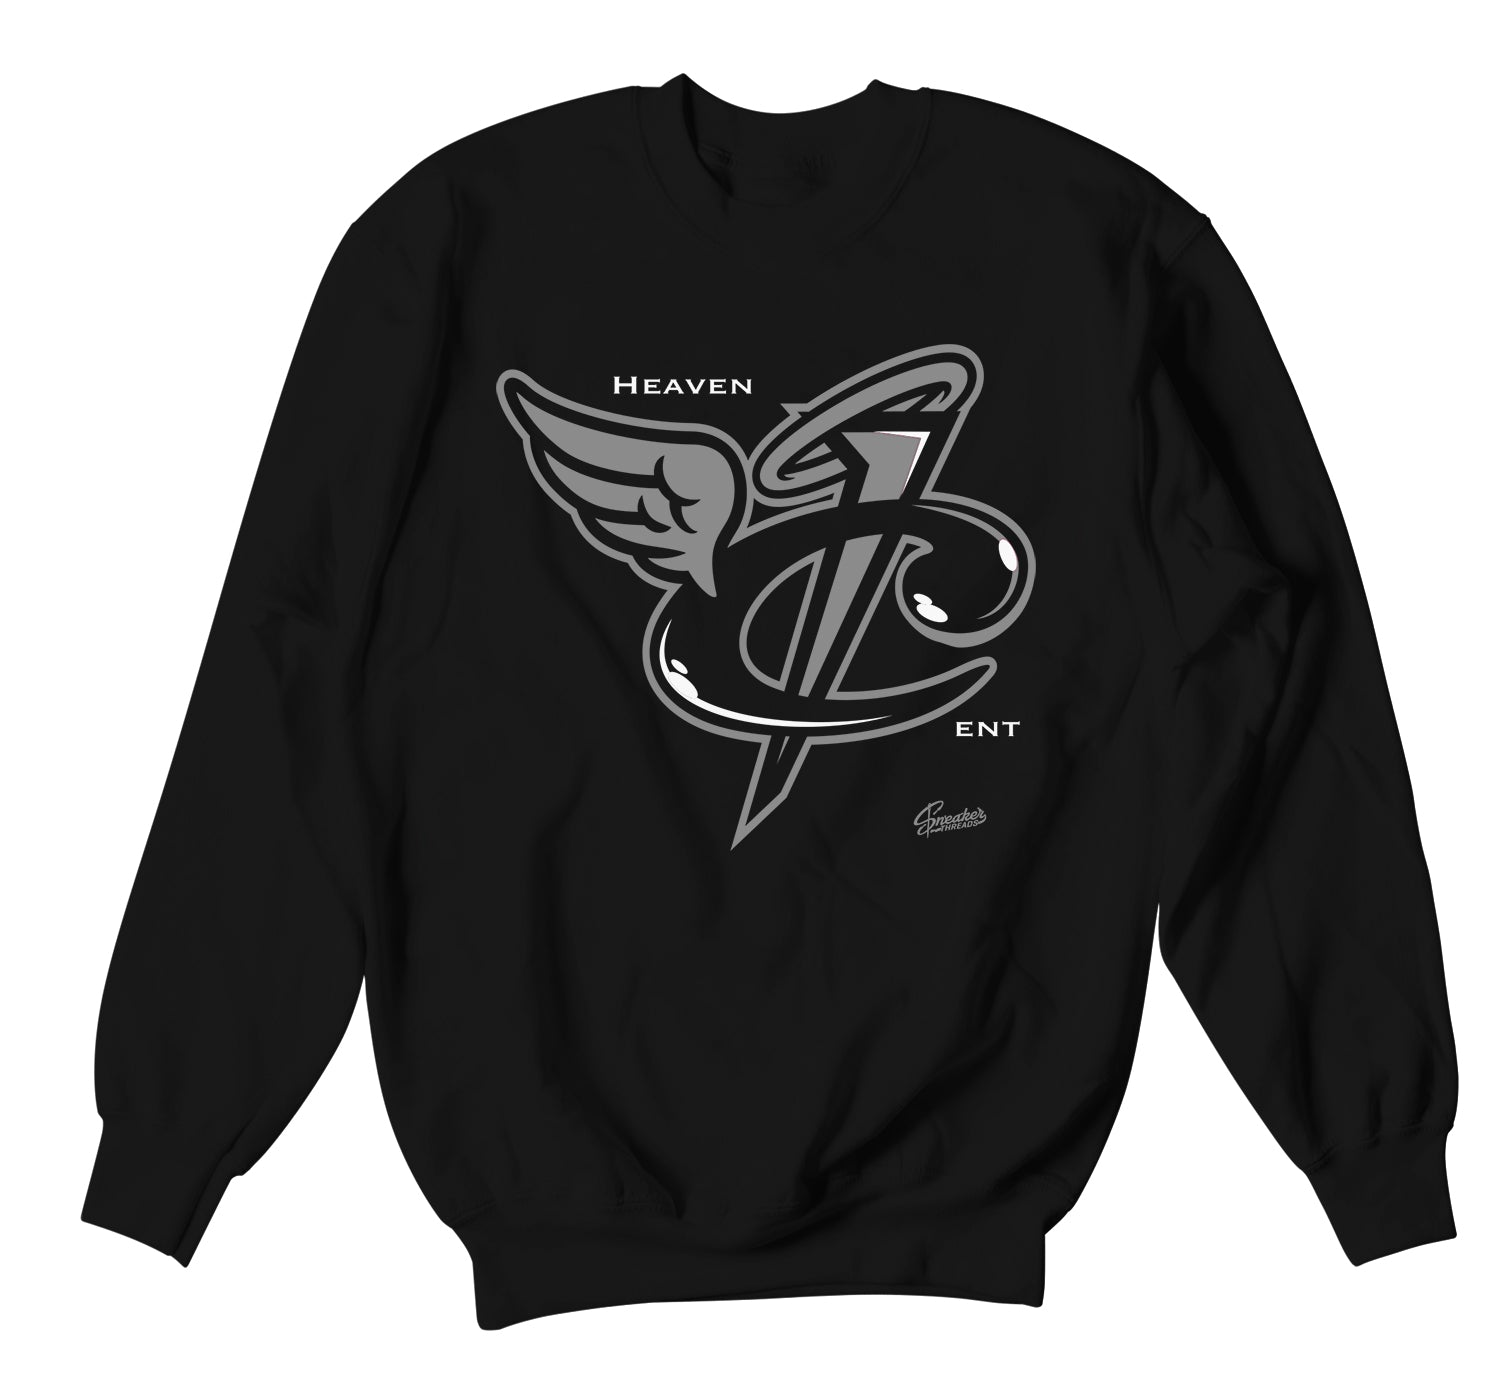 Foamposite Anthracite Heaven Cent Sweater